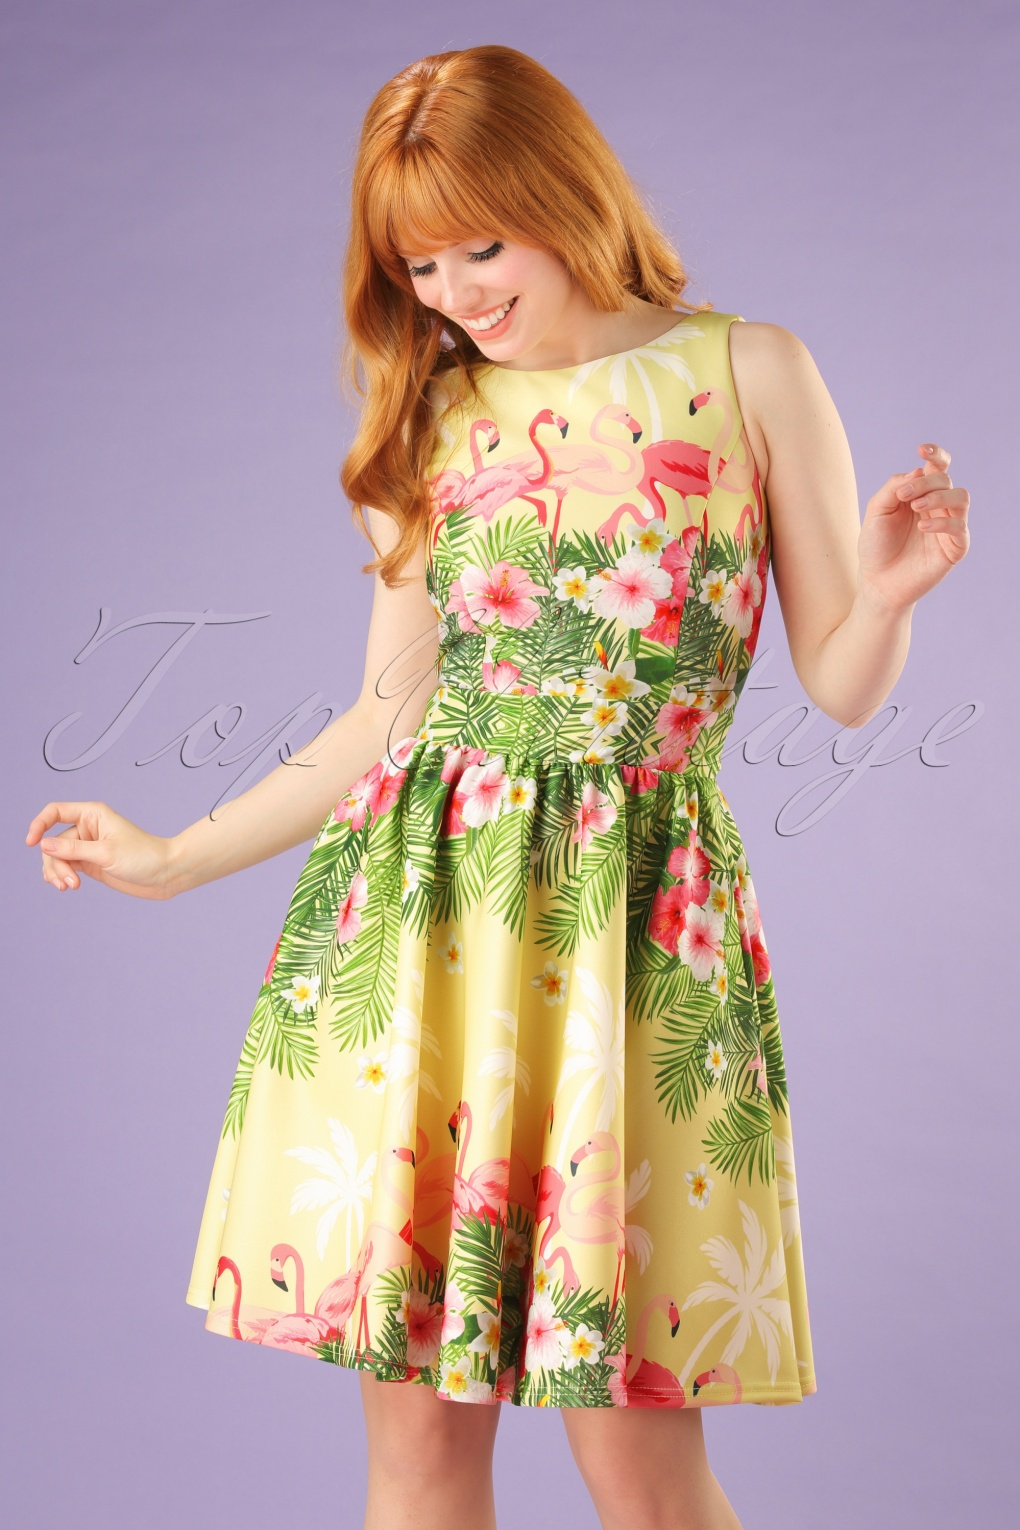 1940s Pinup Dresses for Sale 50s Tea Flamingo Swing Dress in Light Yellow £21.88 AT vintagedancer.com